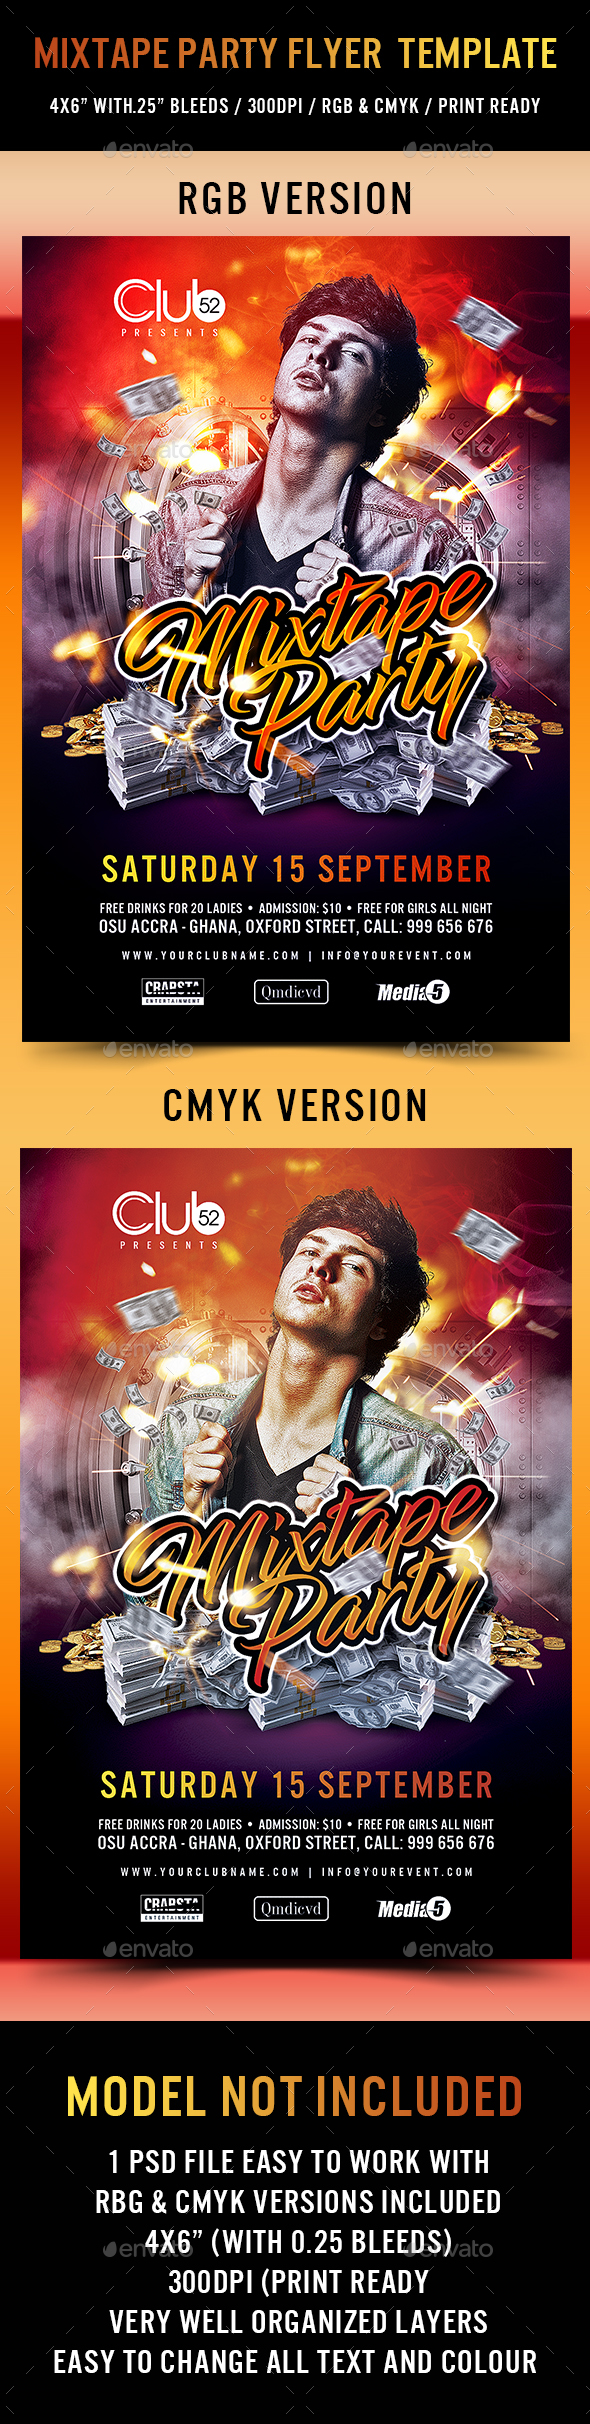 Mixtape Party Flyer Template - Clubs & Parties Events